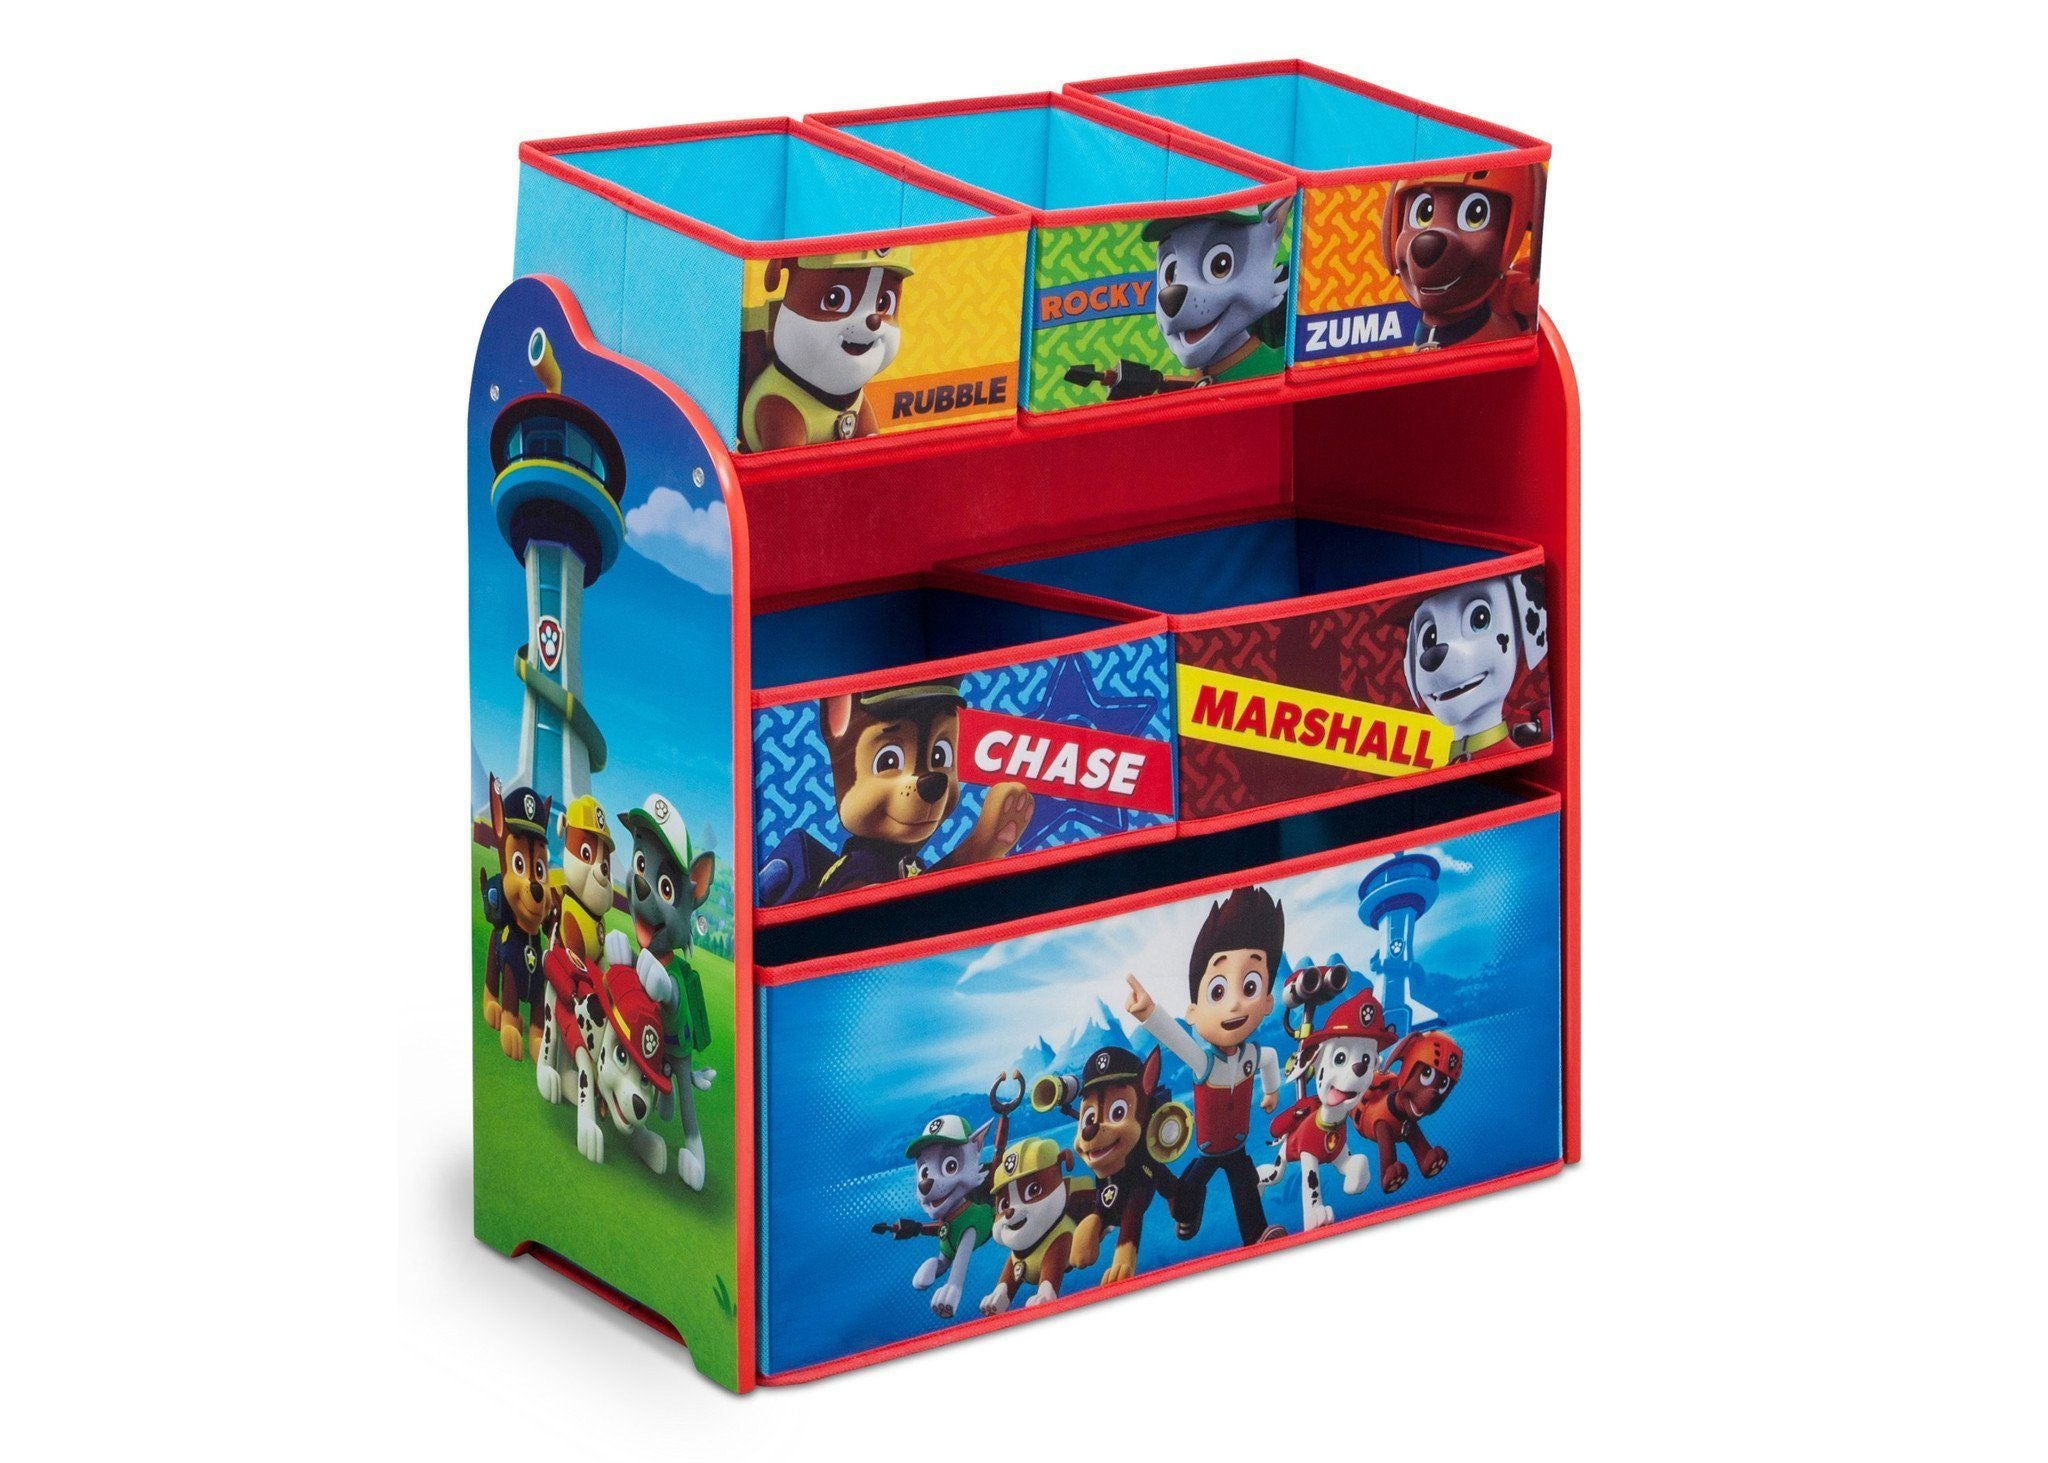 Paw Patrol Toy Organizer Bin Cubby Kids Child Storage Box: PAW Patrol Multi-Bin Toy Organizer